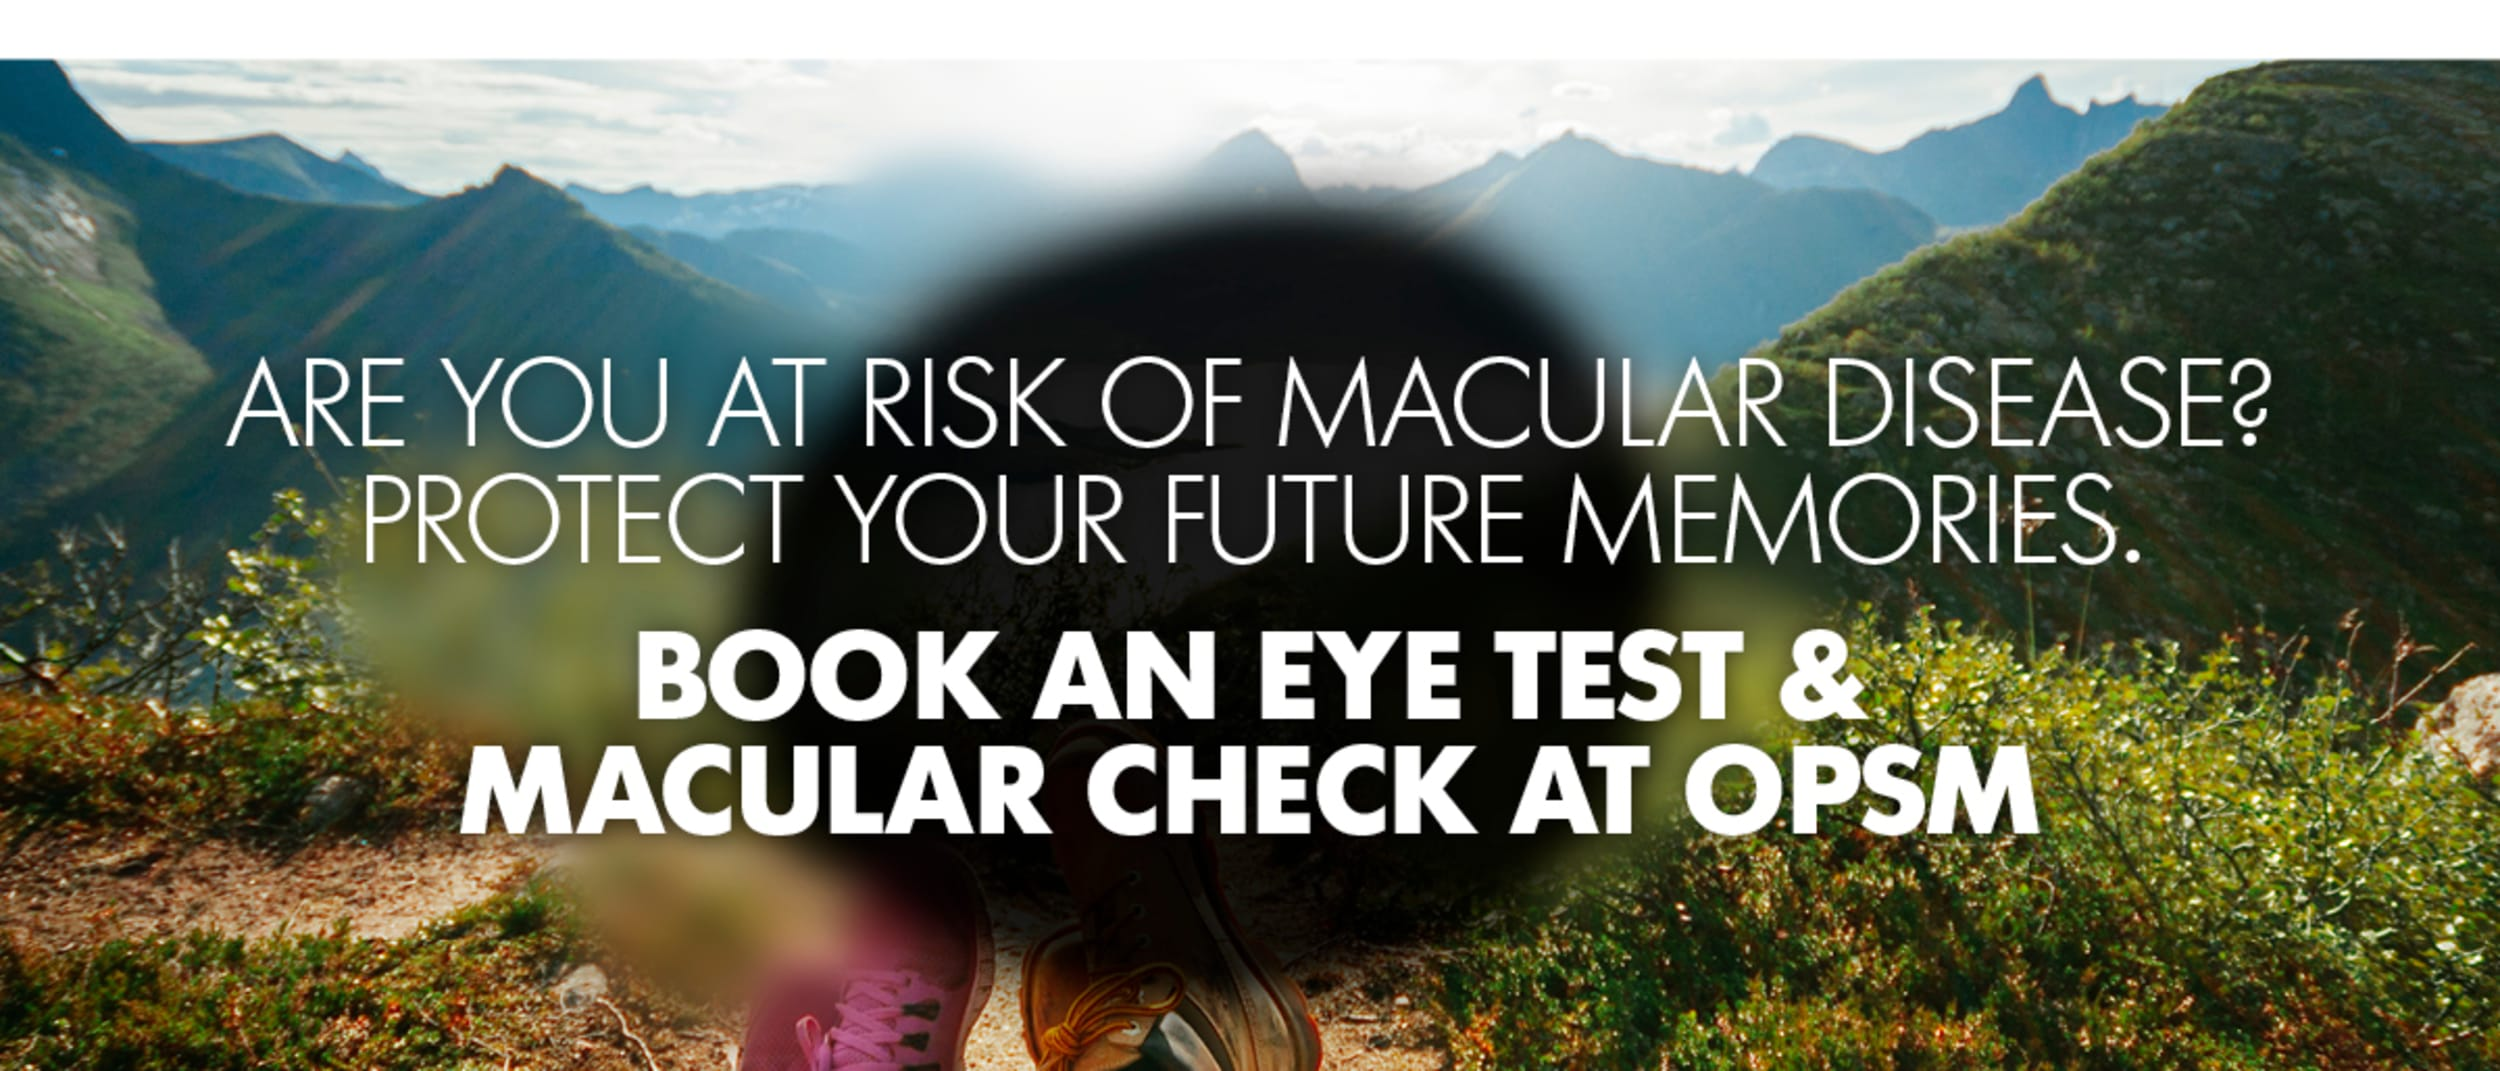 May is Macular Month